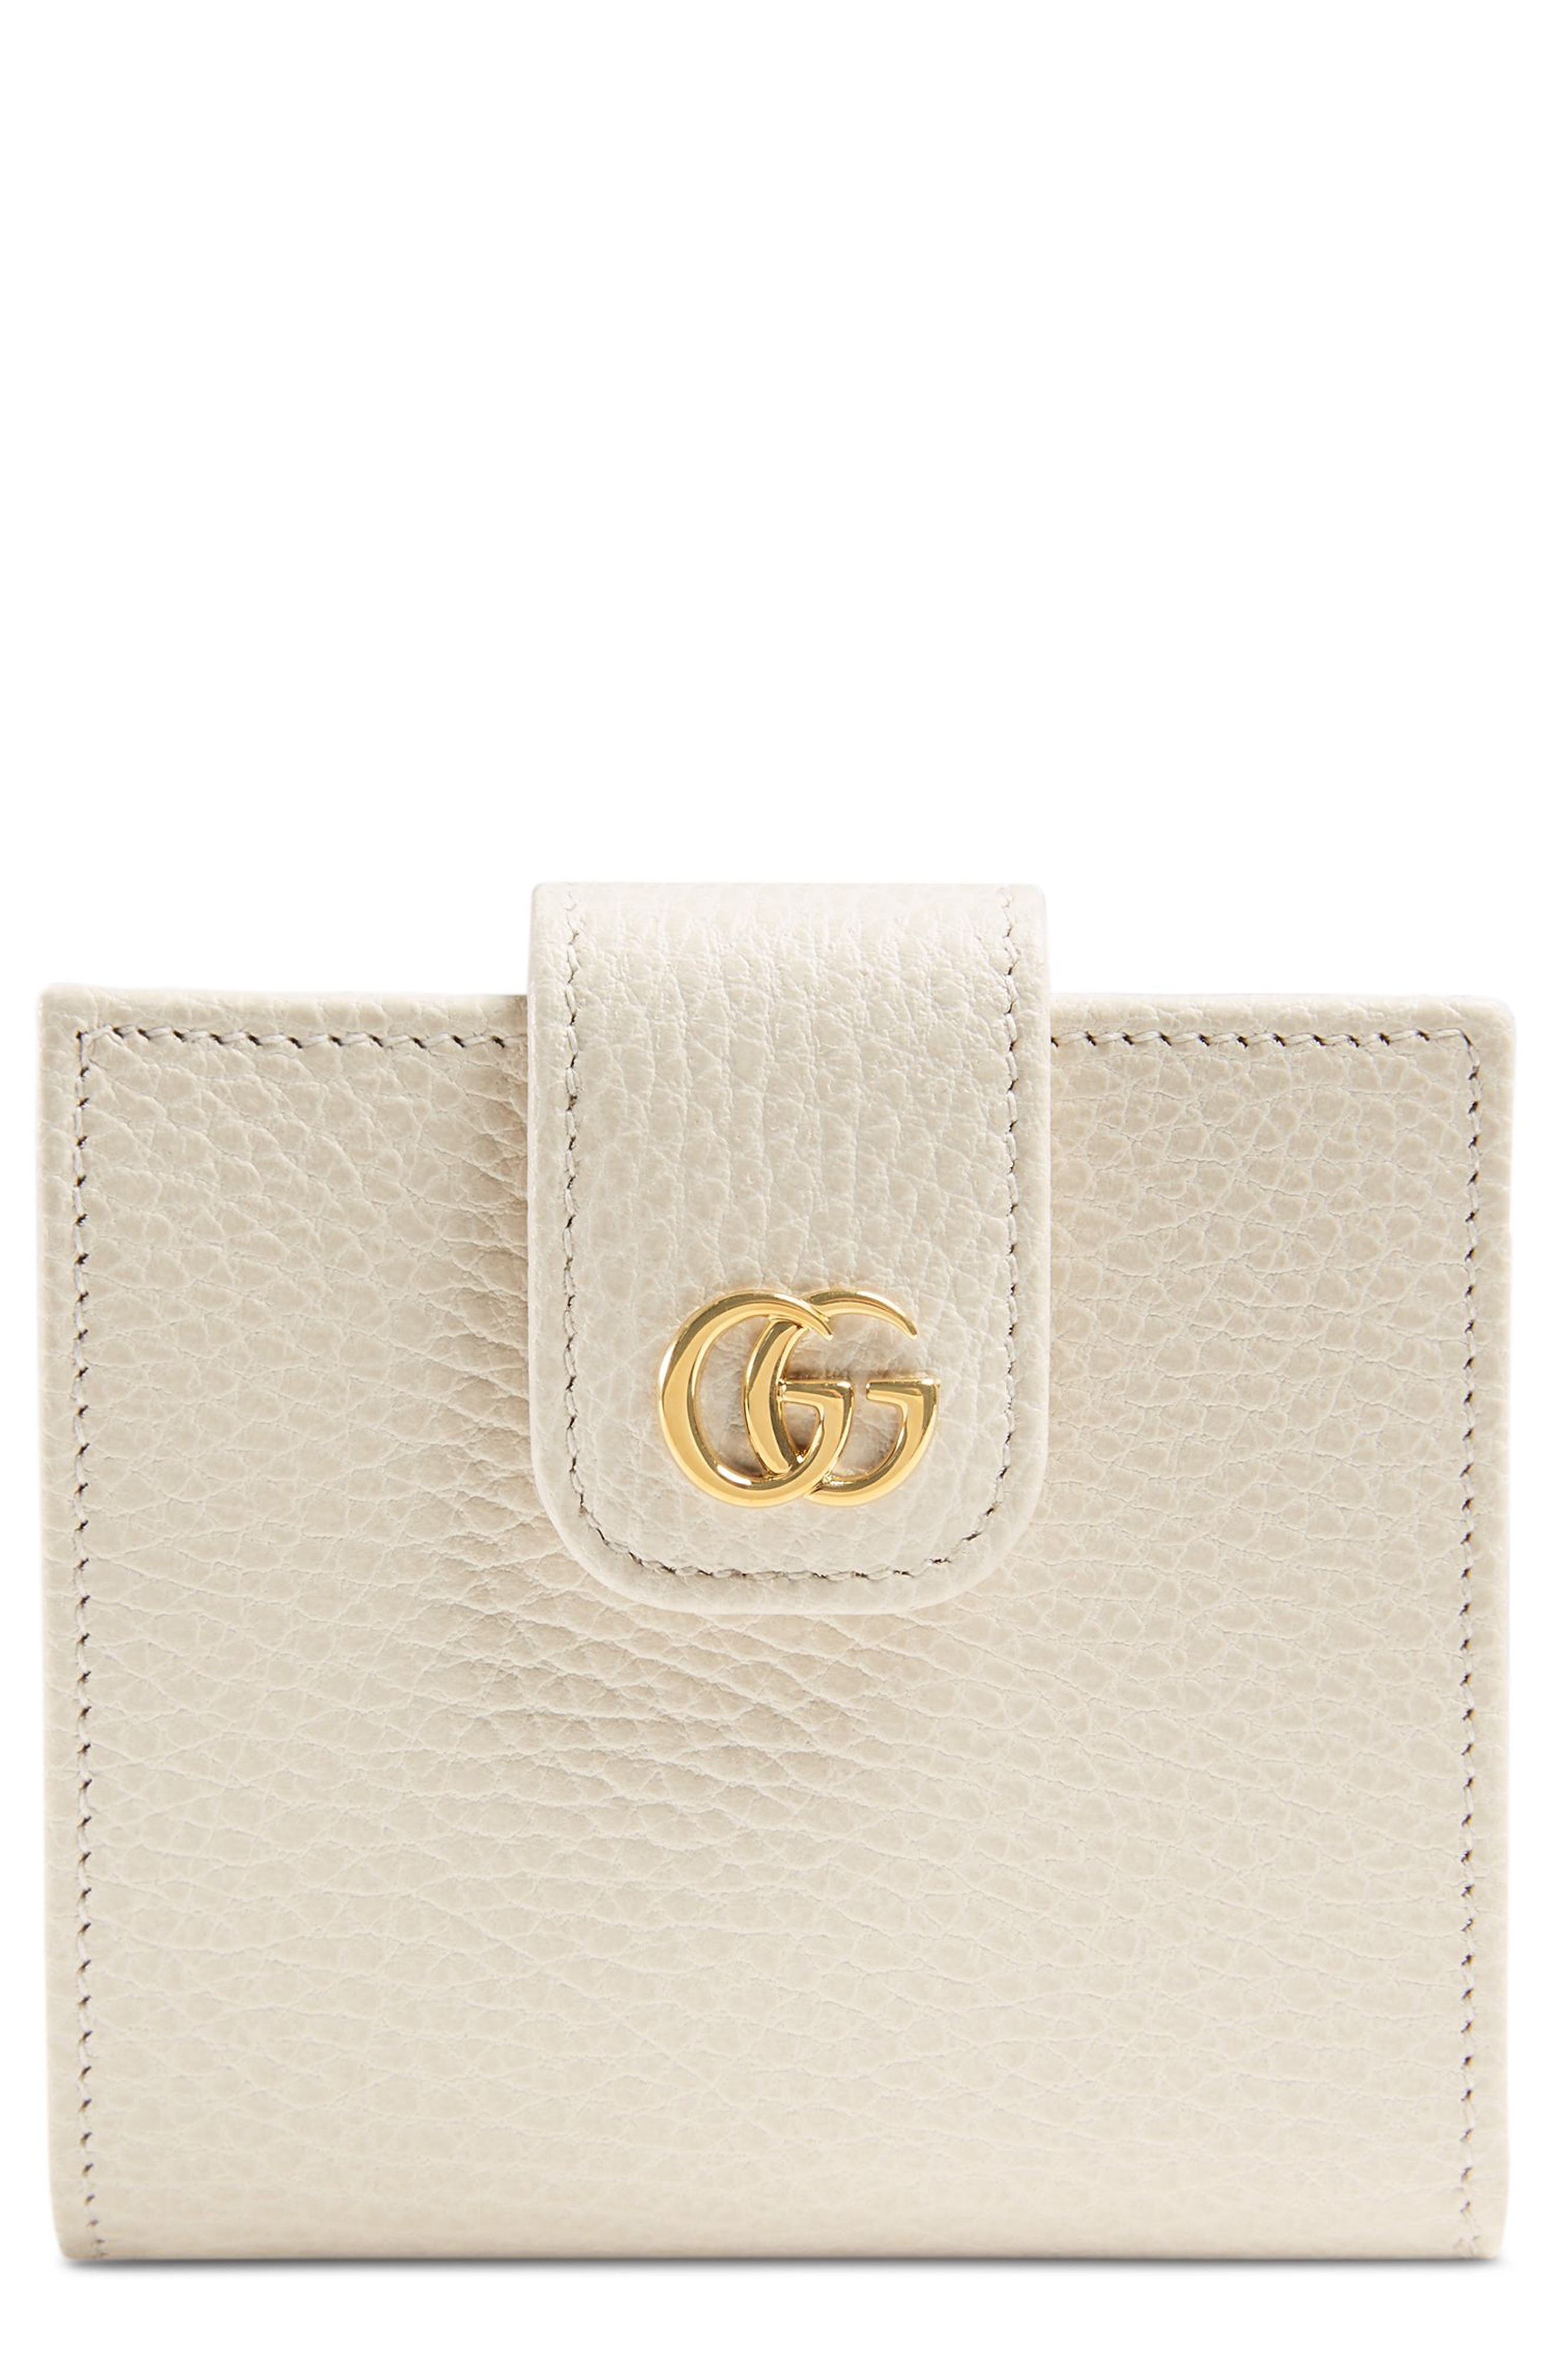 GG Marmont Leather Wallet,                         Main,                         color, Mystic White